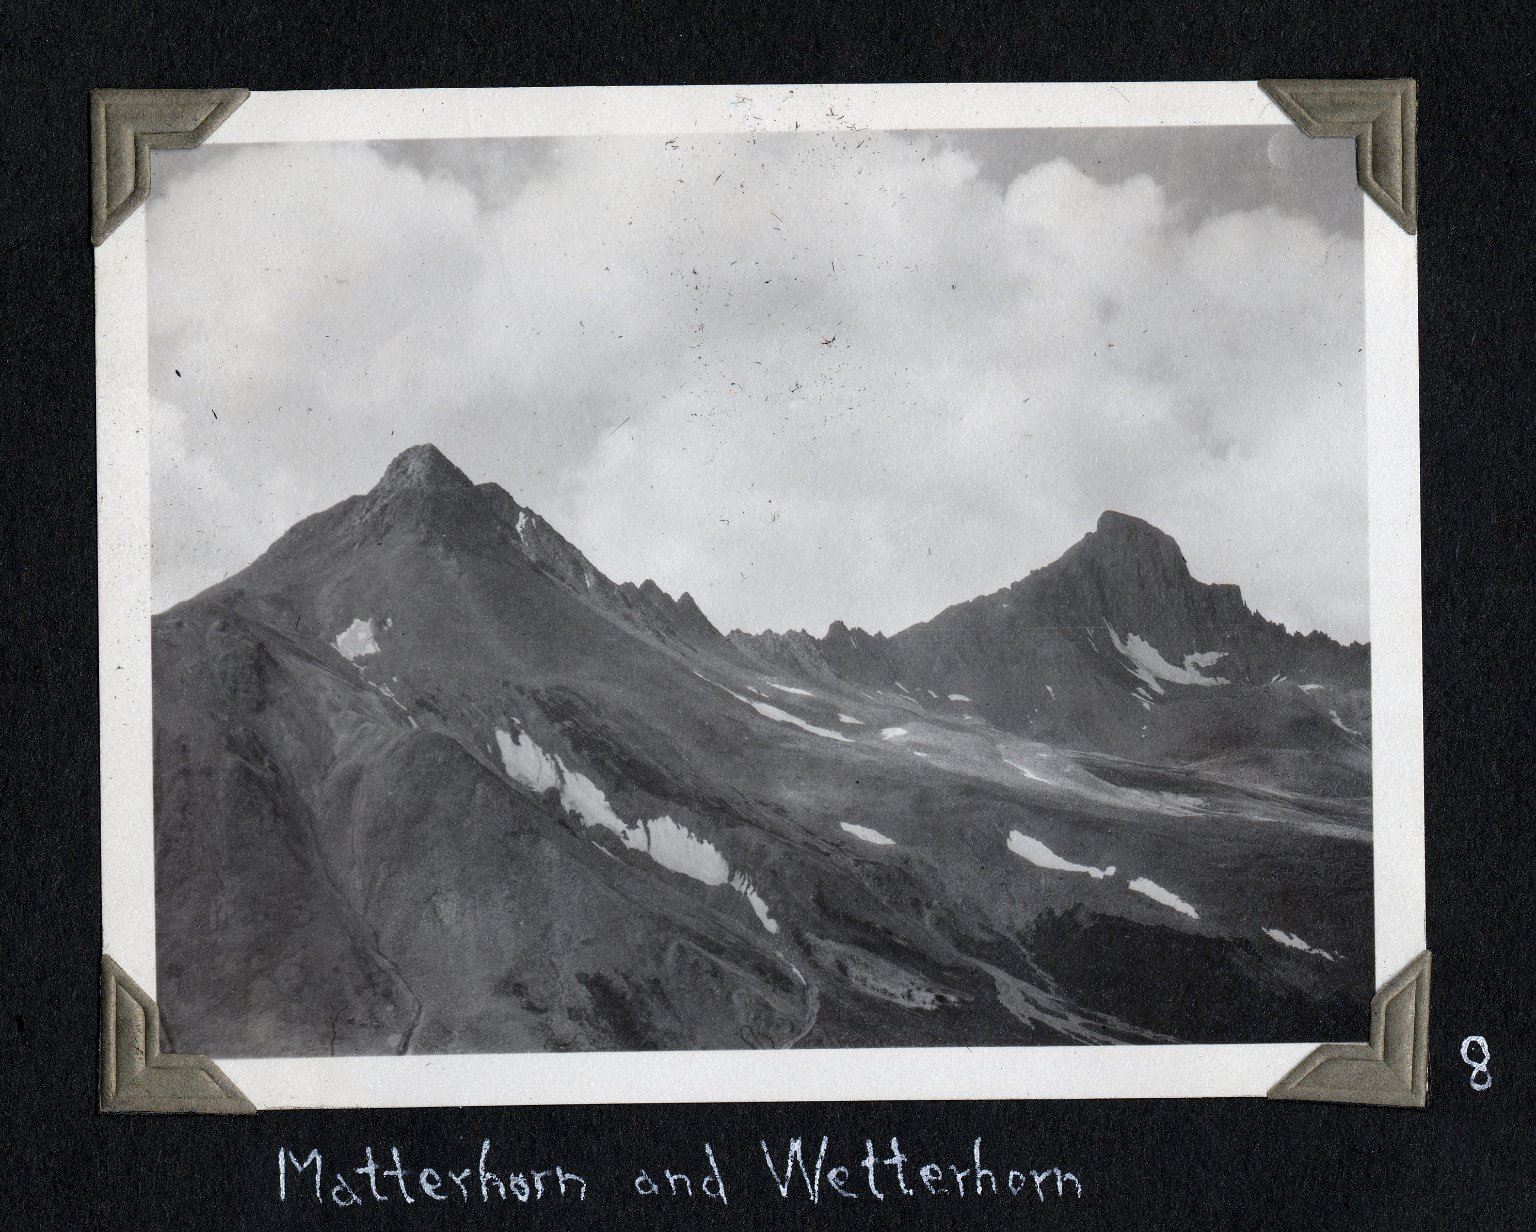 Matterhorn Peak and Wetterhorn Peak